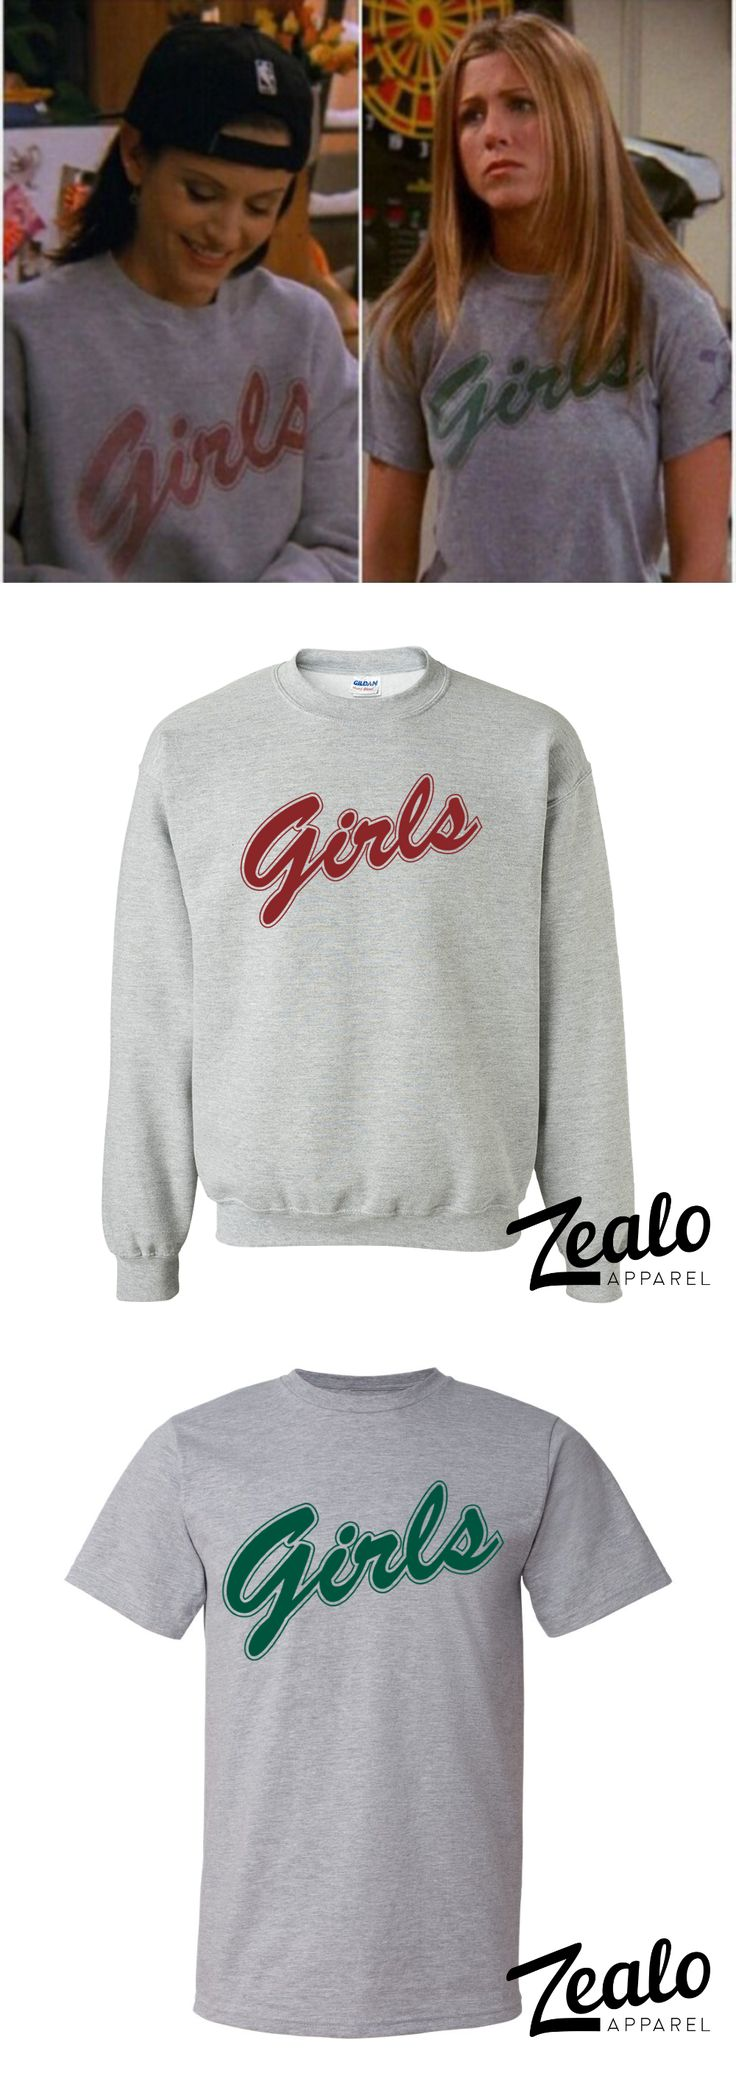 Monica Geller Style Girls Sweater. Just over a week ago we launched a replica of Rachel Green's 'Girls' baseball tee. This week we're pleased to announce the arrival of its twin! A replica of the 'Girls' sweater worn by Monica Geller in Friends is now ava http://bellanblue.com